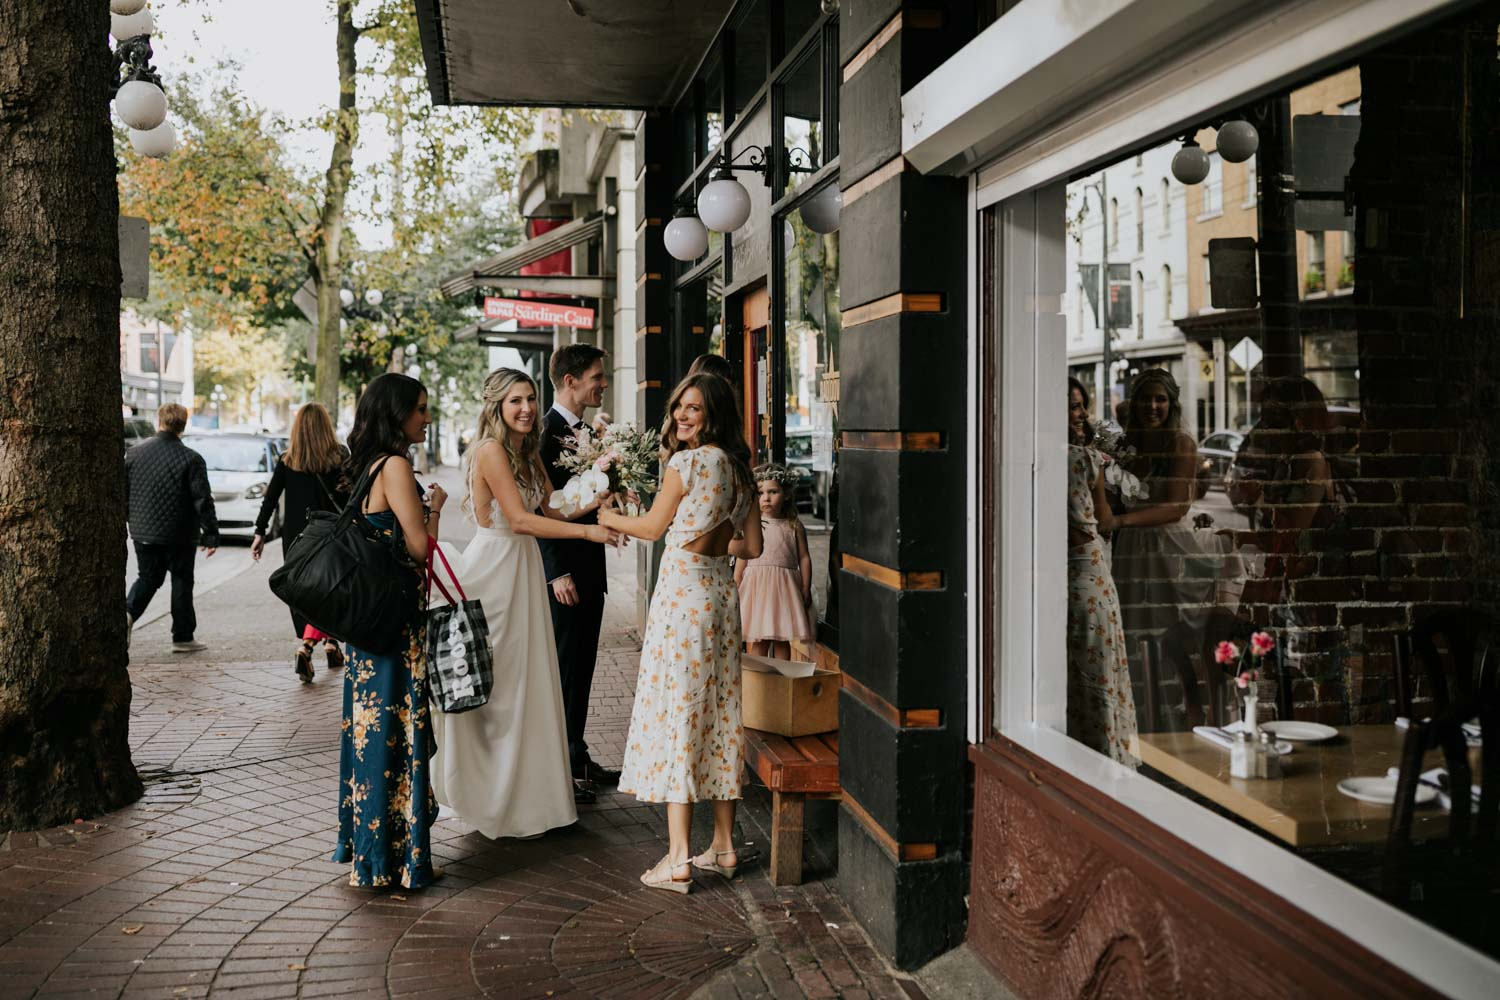 Bride and bridesmaids on the streets of Gastown, outside The Diamond